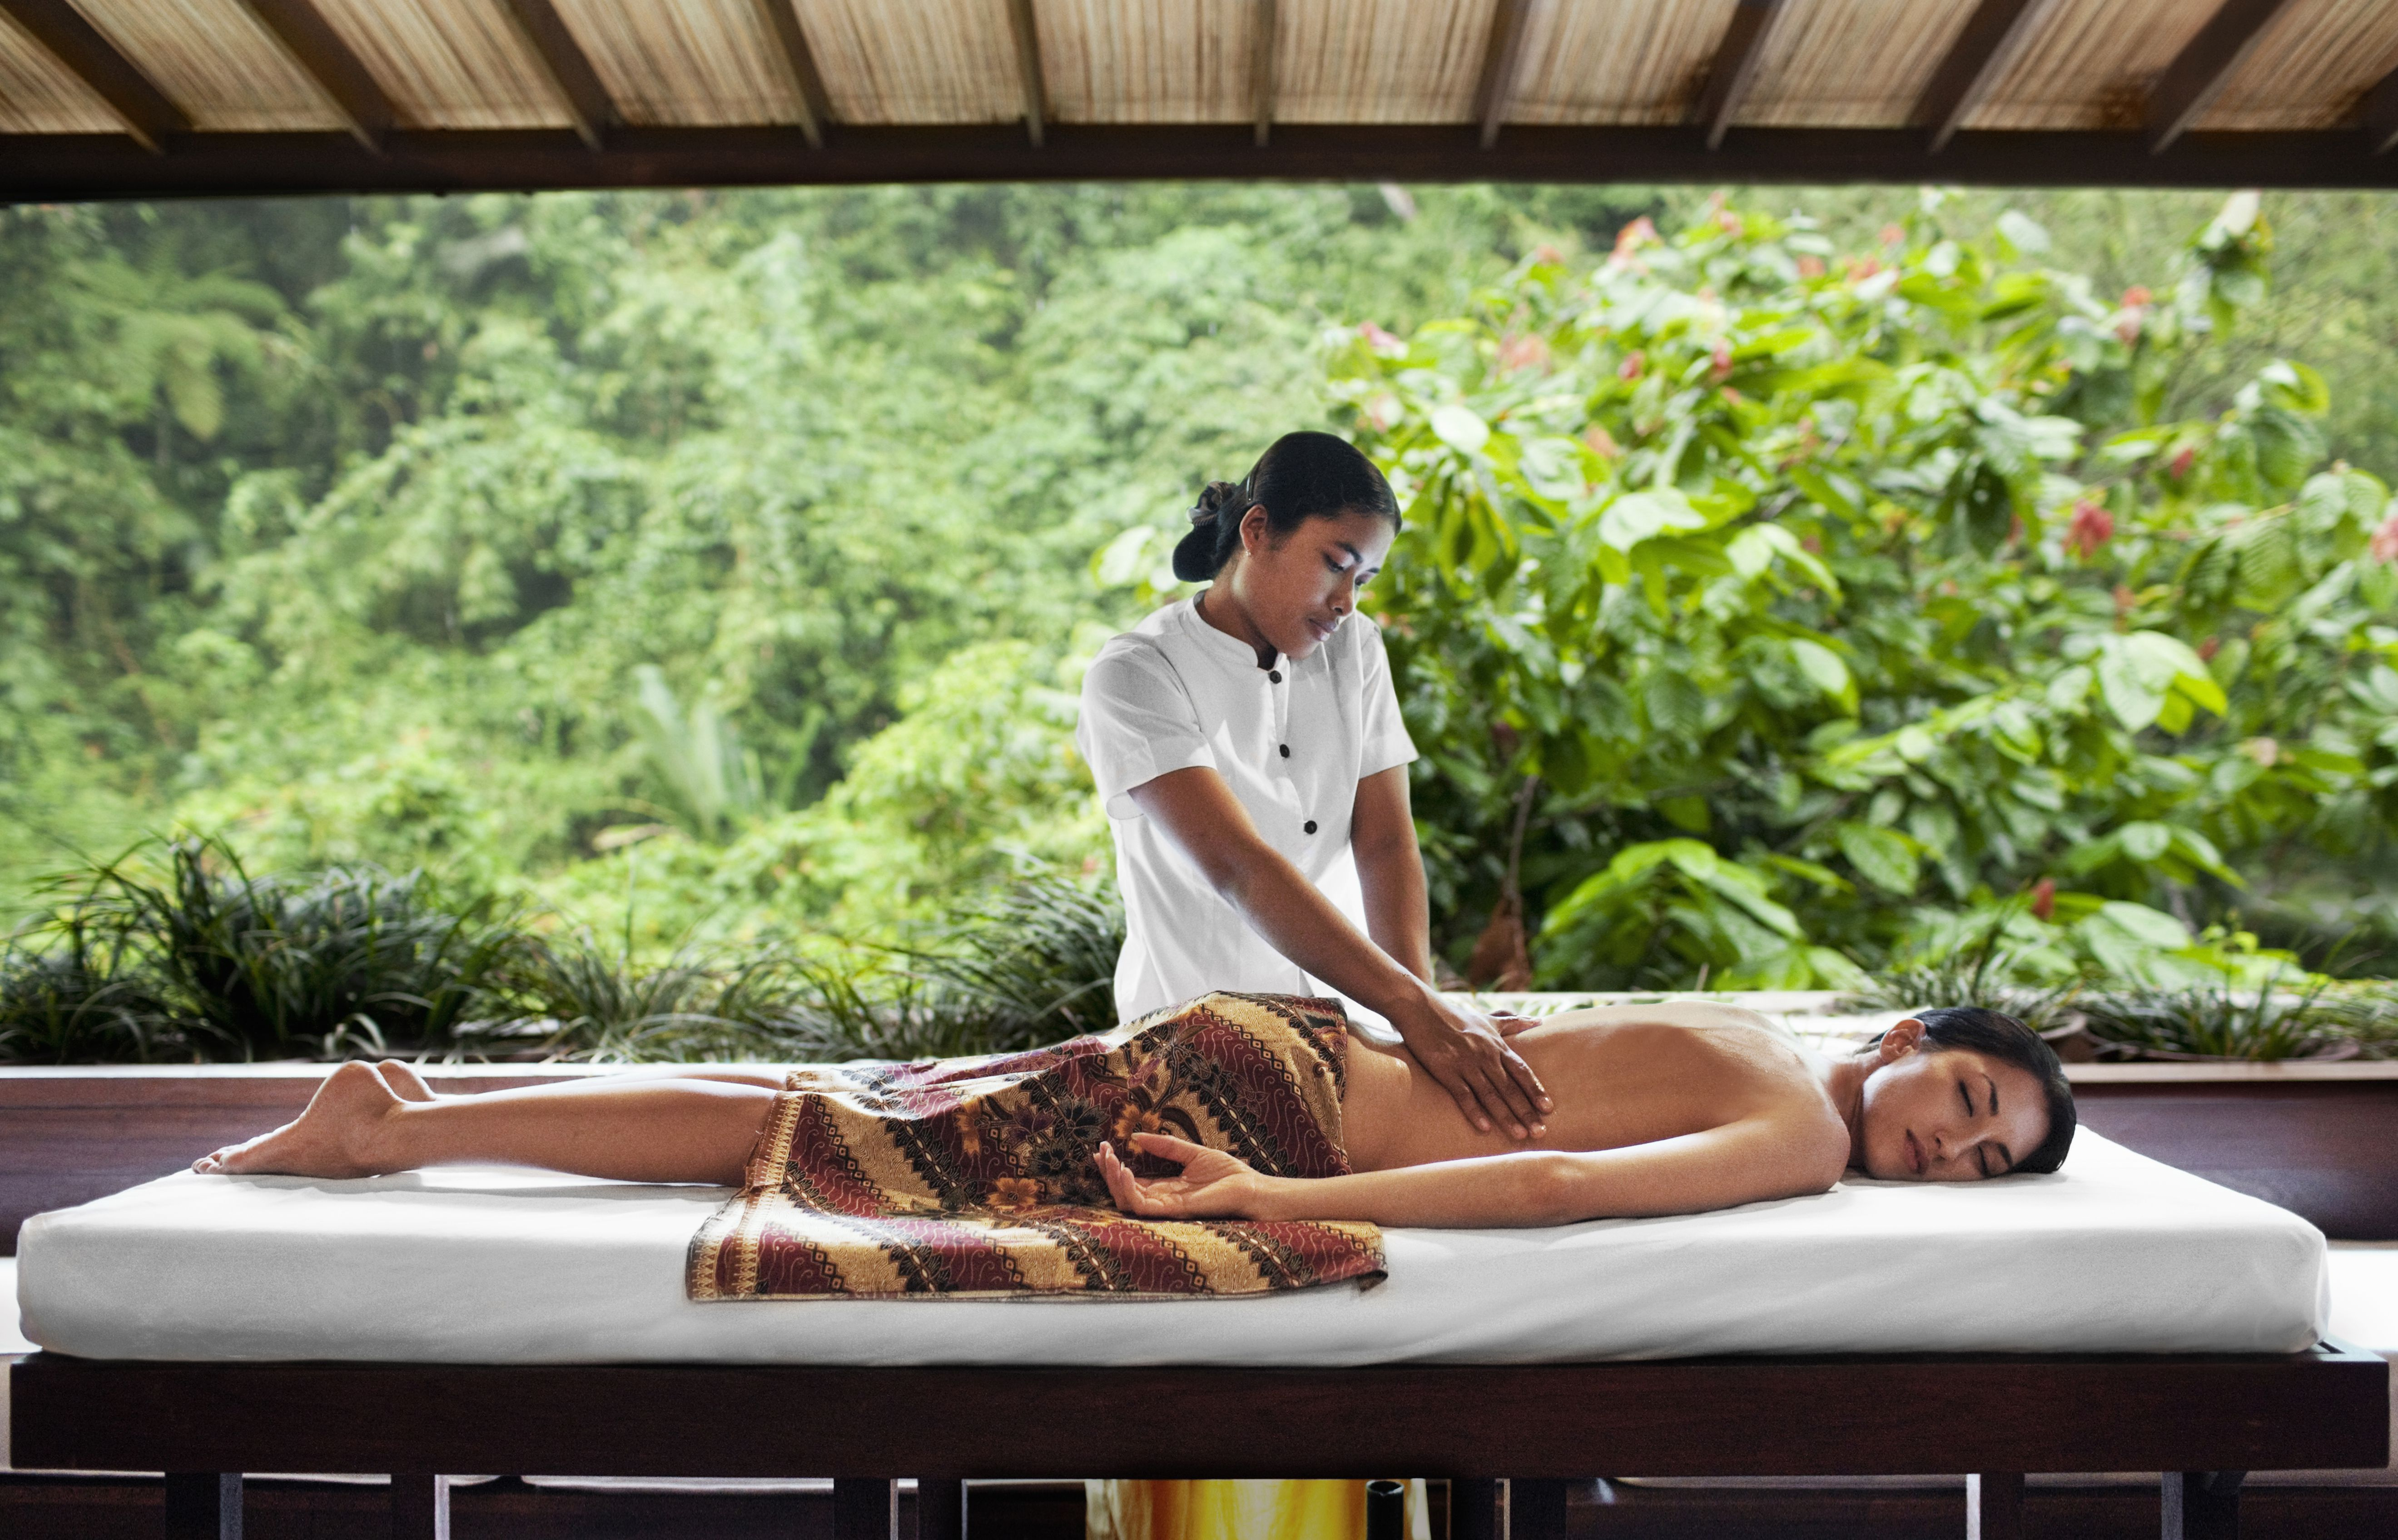 Why Does Sex Happen in Spas?